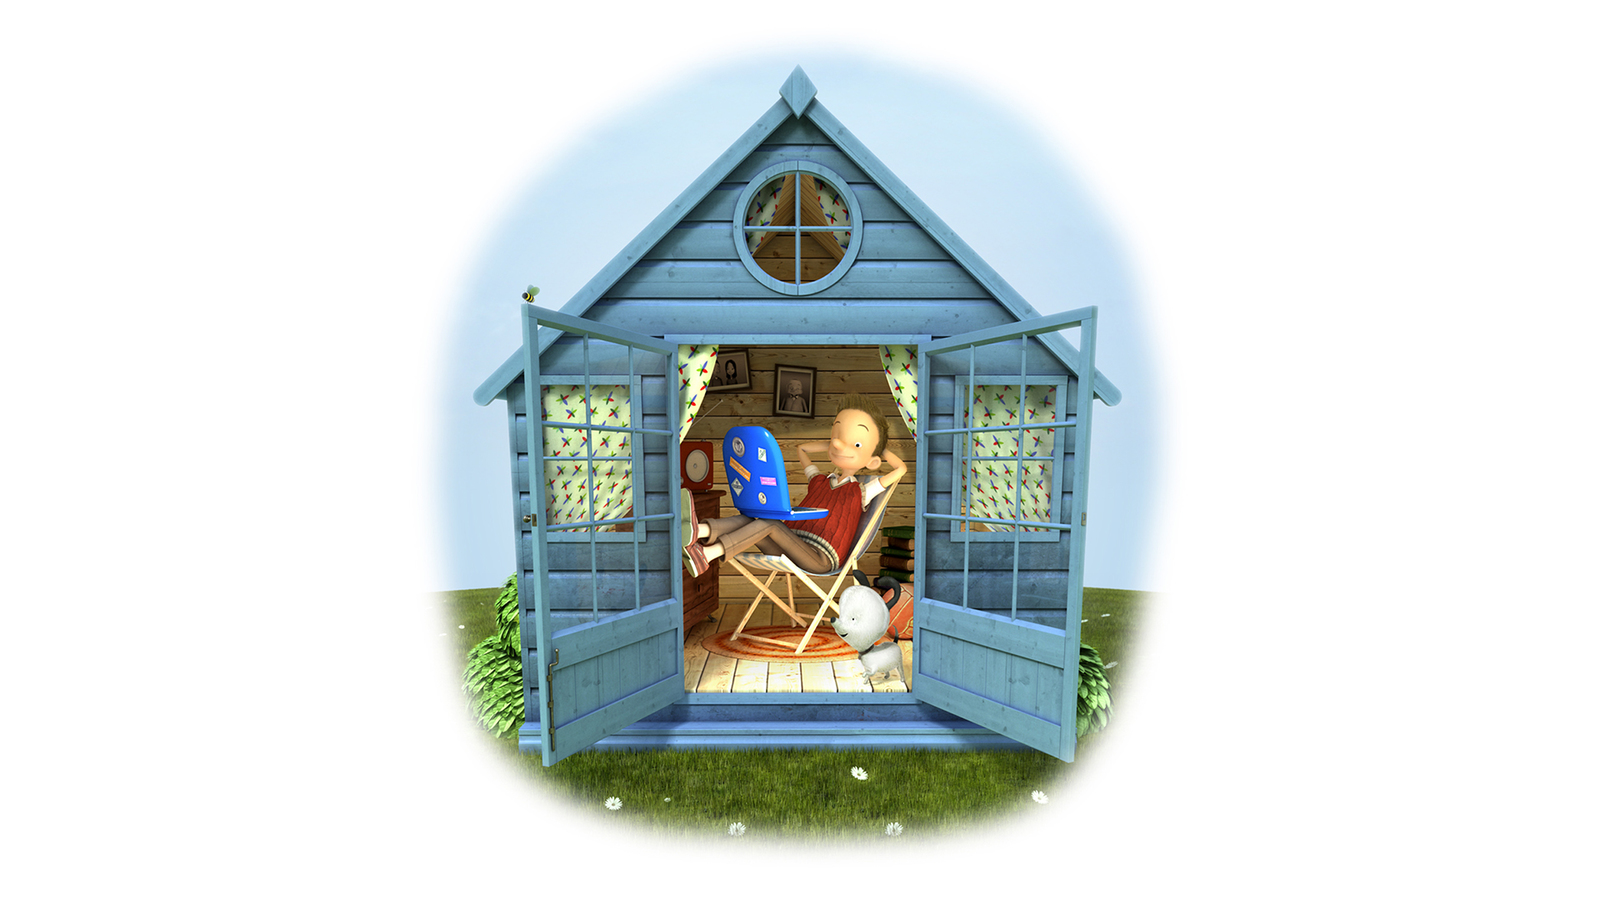 3d illustration of man in shed with laptop and dog